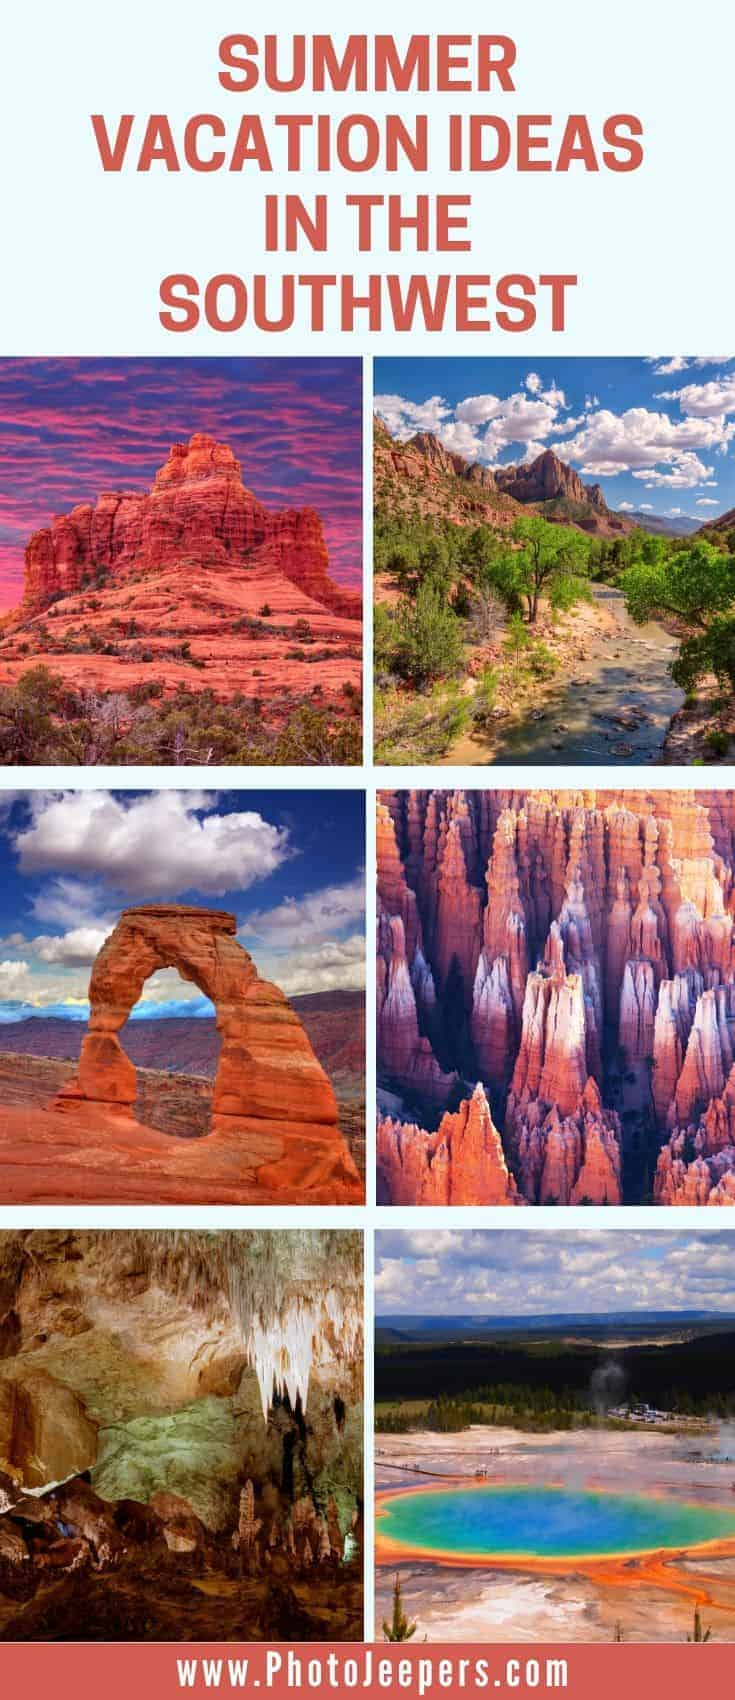 Summer Vacation Ideas in the Southwest